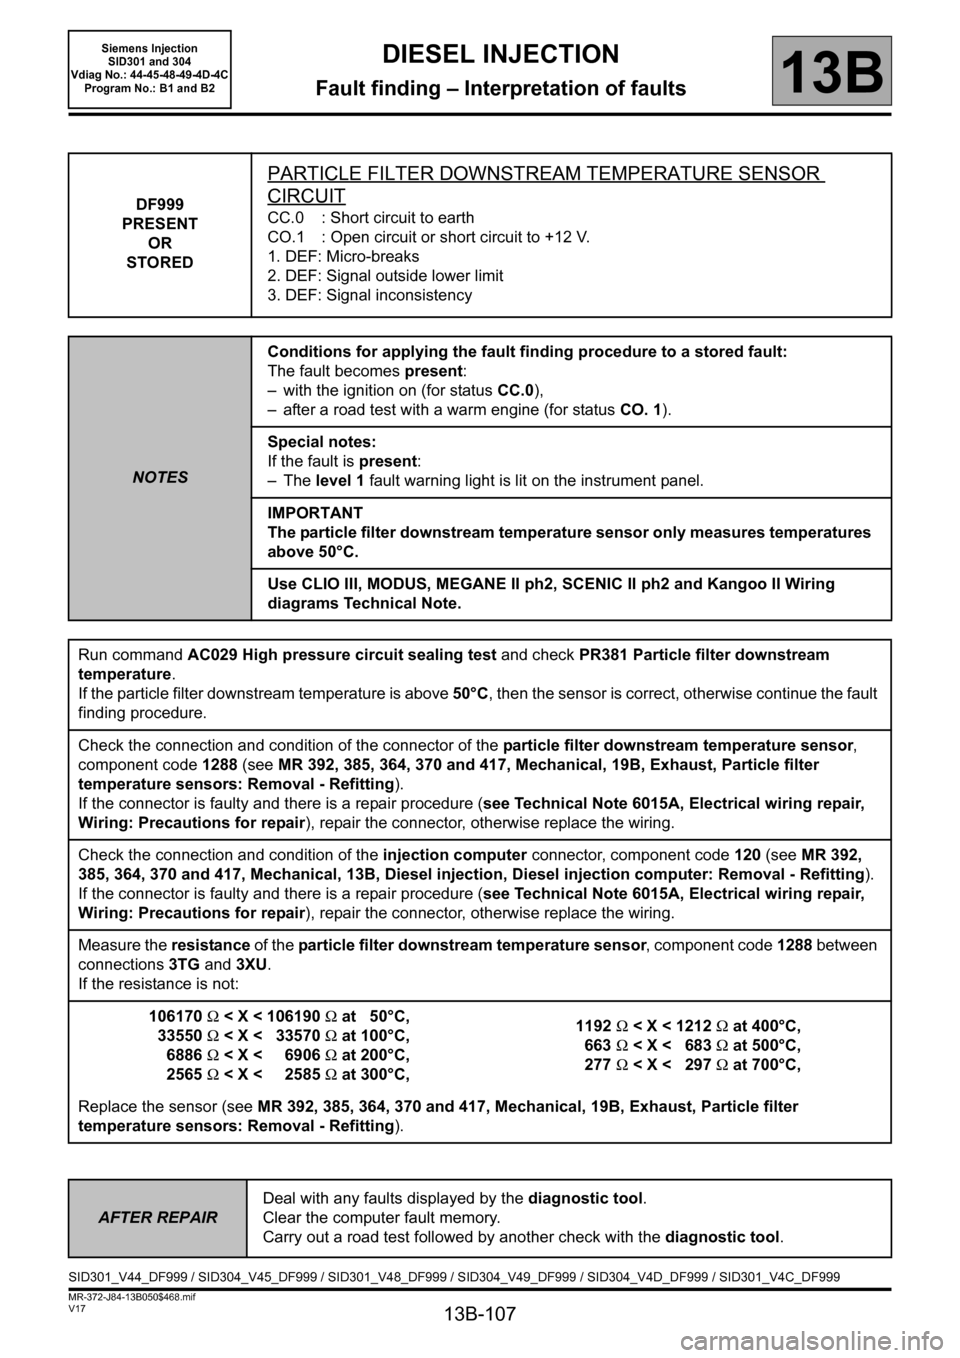 RENAULT SCENIC 2011 J95 / 3.G Engine And Peripherals Siemens Injection Workshop Manual, Page 107